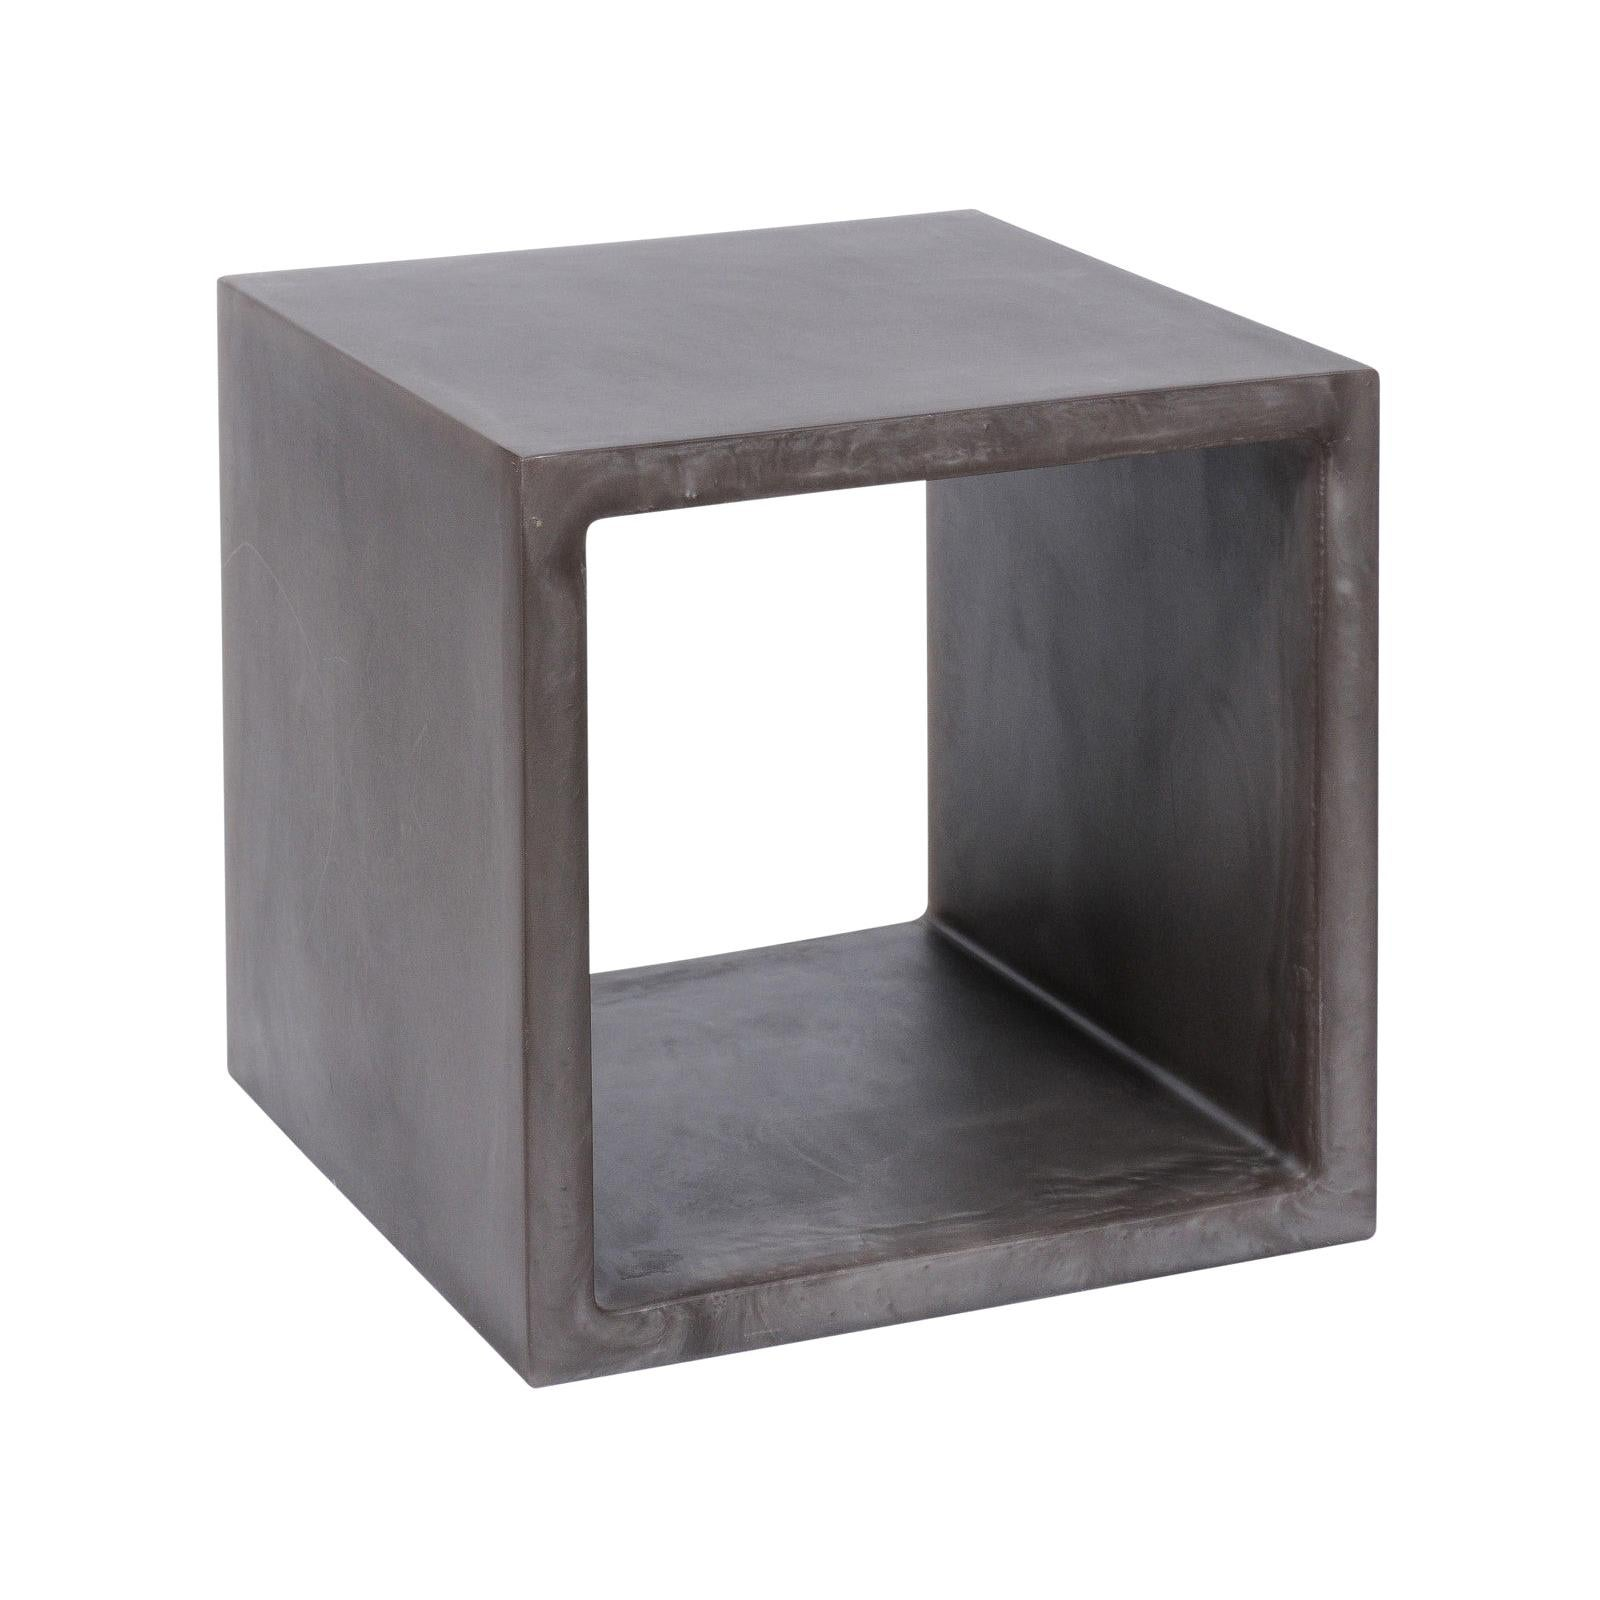 chief cube open resin side table or end table by martha sturdy